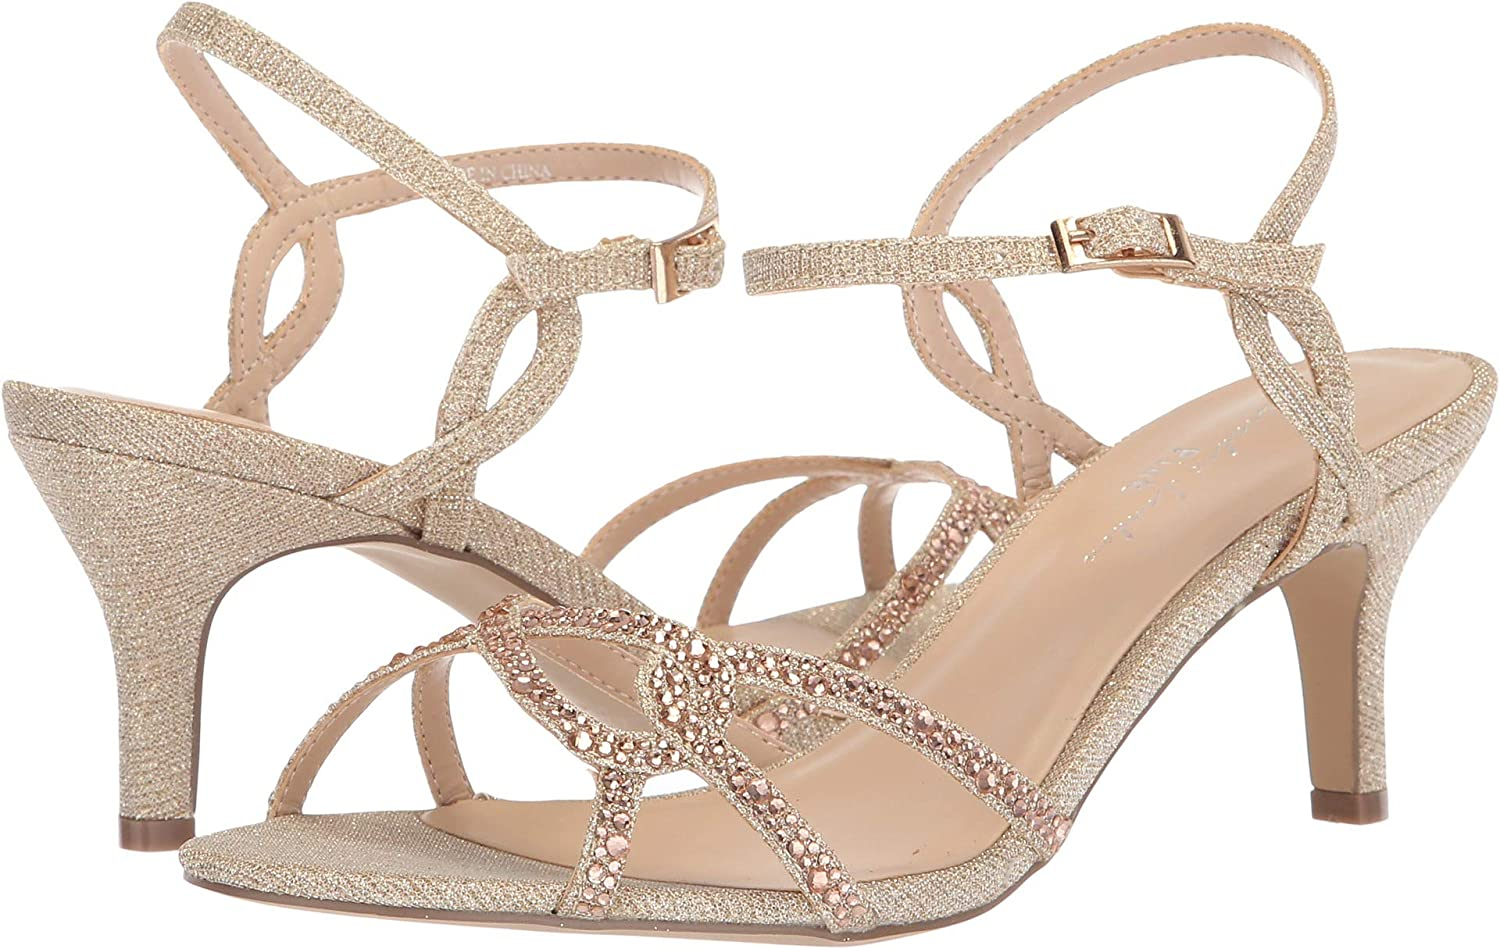 Paradox London Pink Women's Summer Champagne 8.5 M US